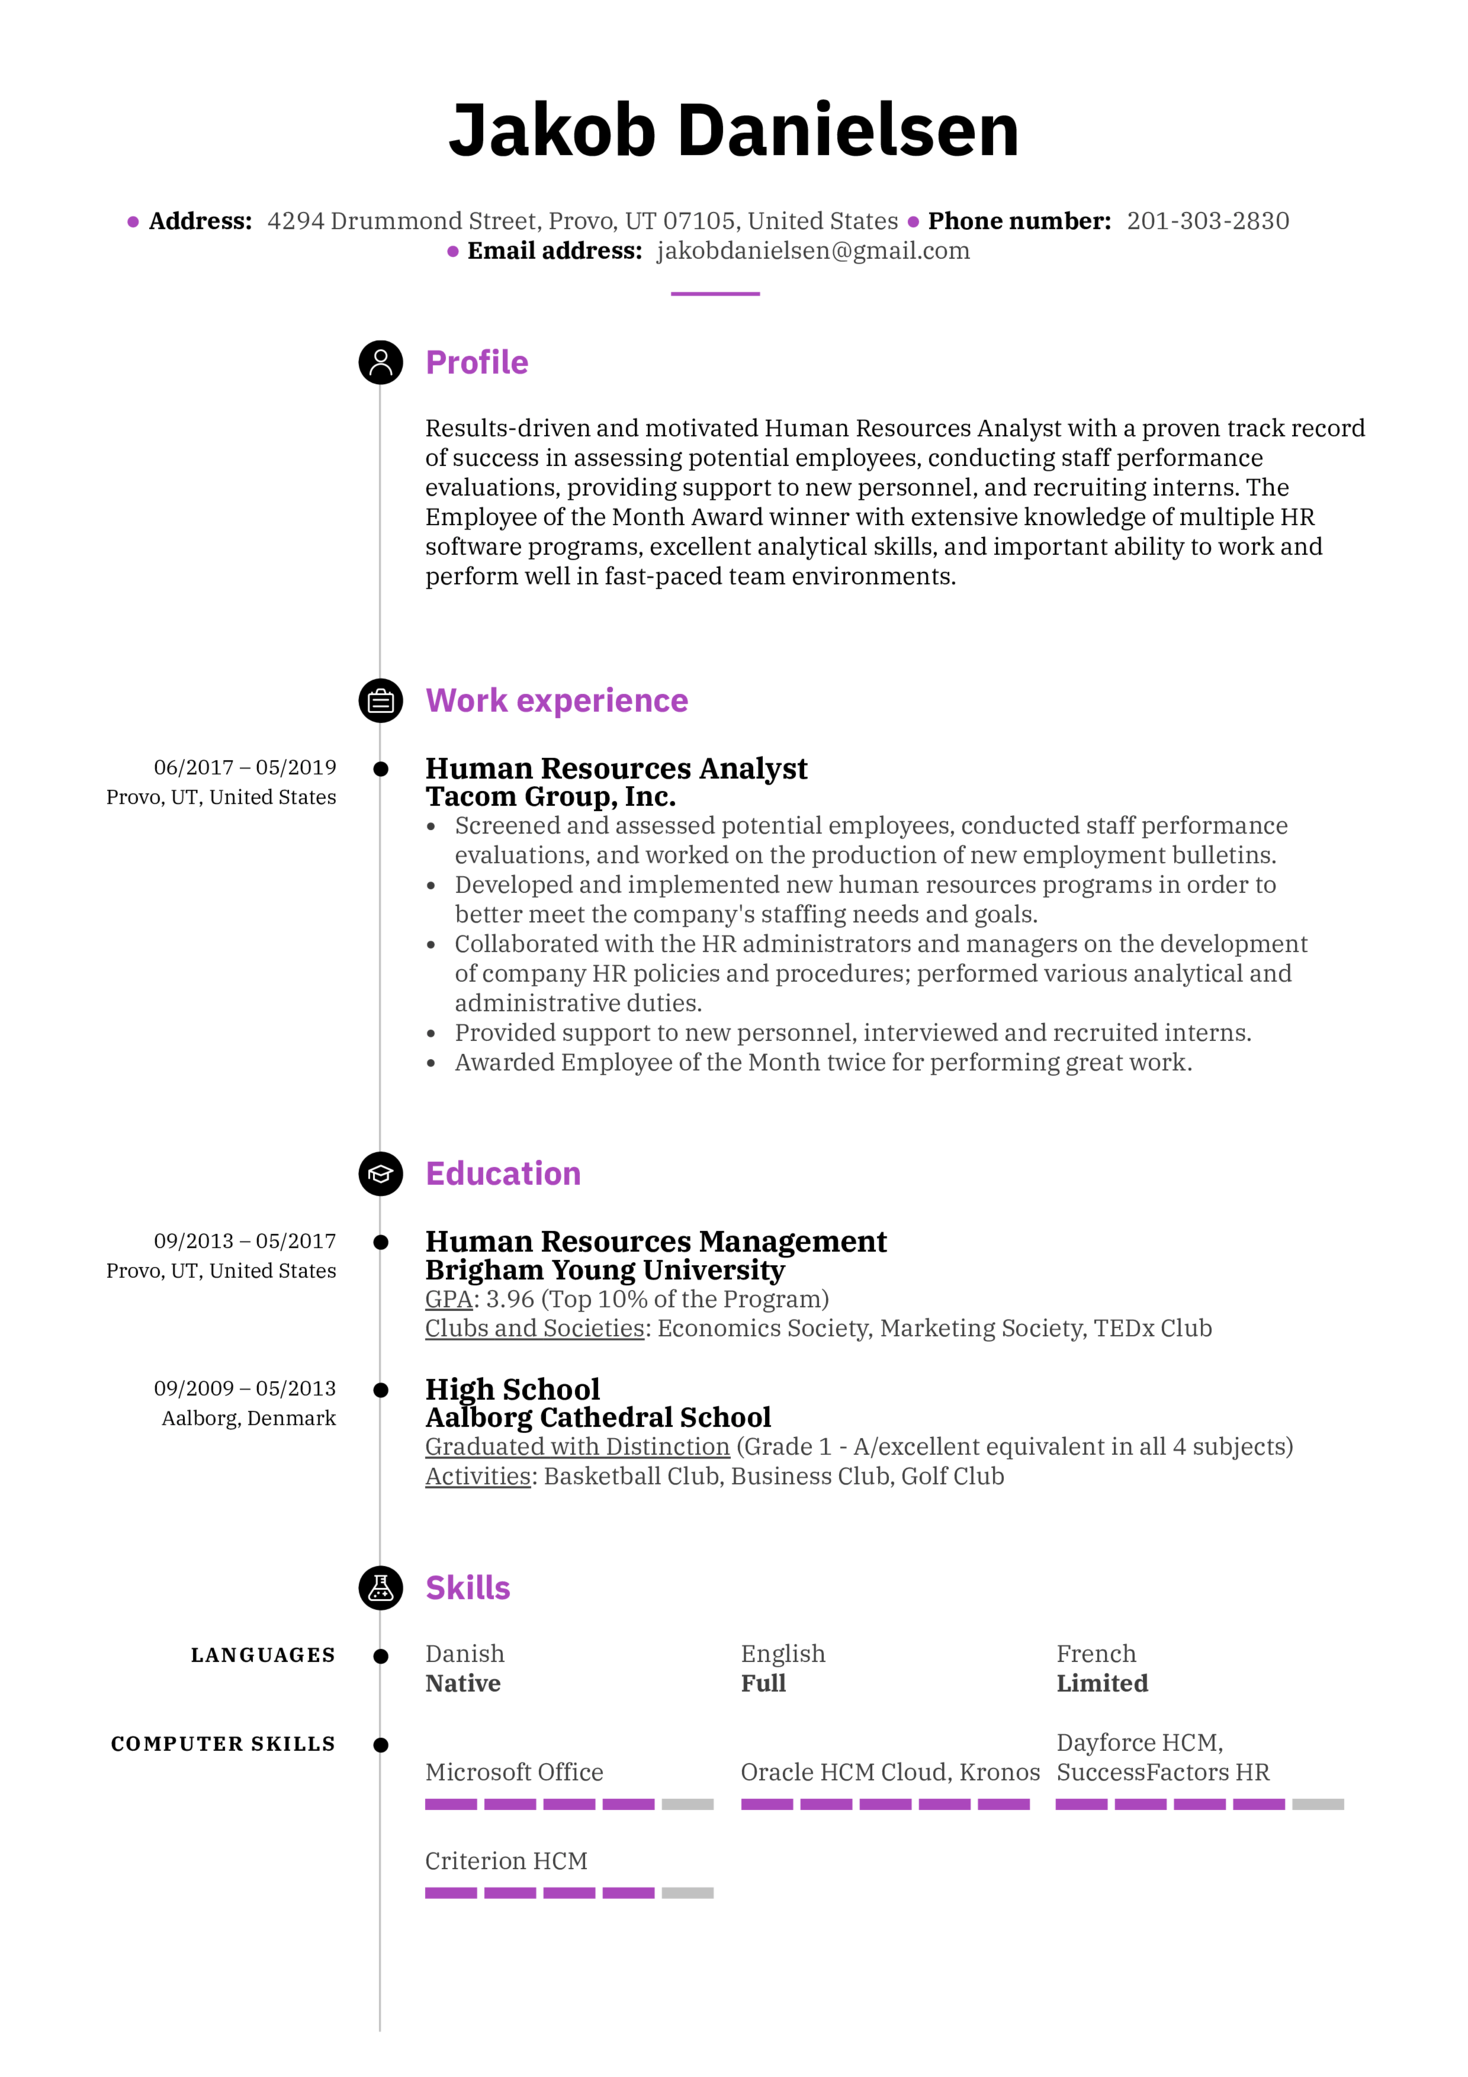 Human Resources Analyst Resume Sample (Parte 1)